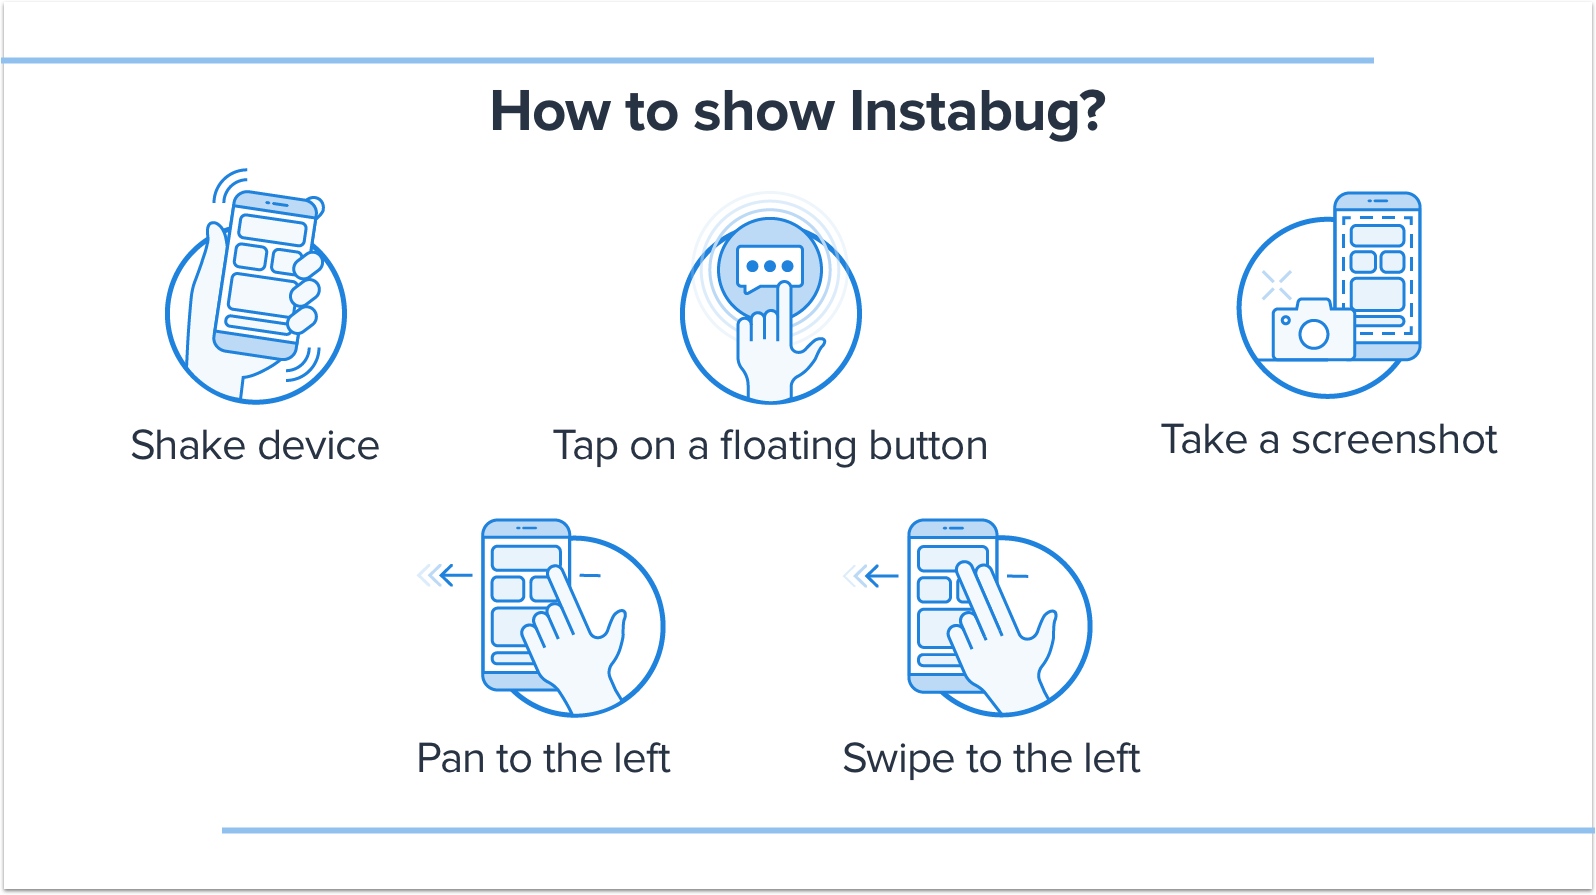 How to show Instabug